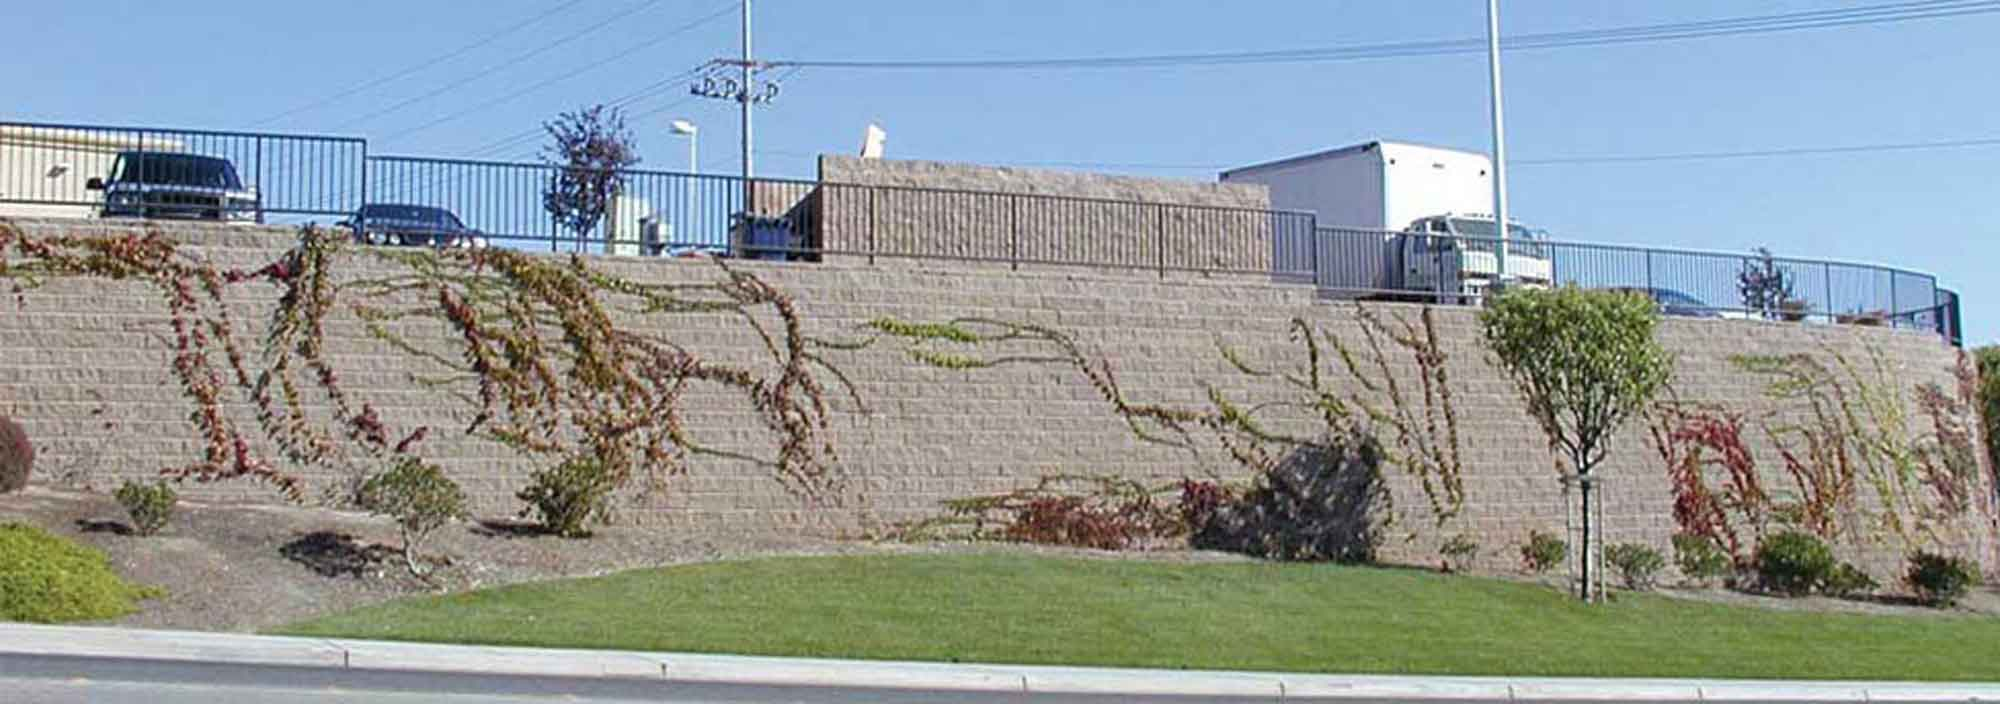 reinforced retaining walls